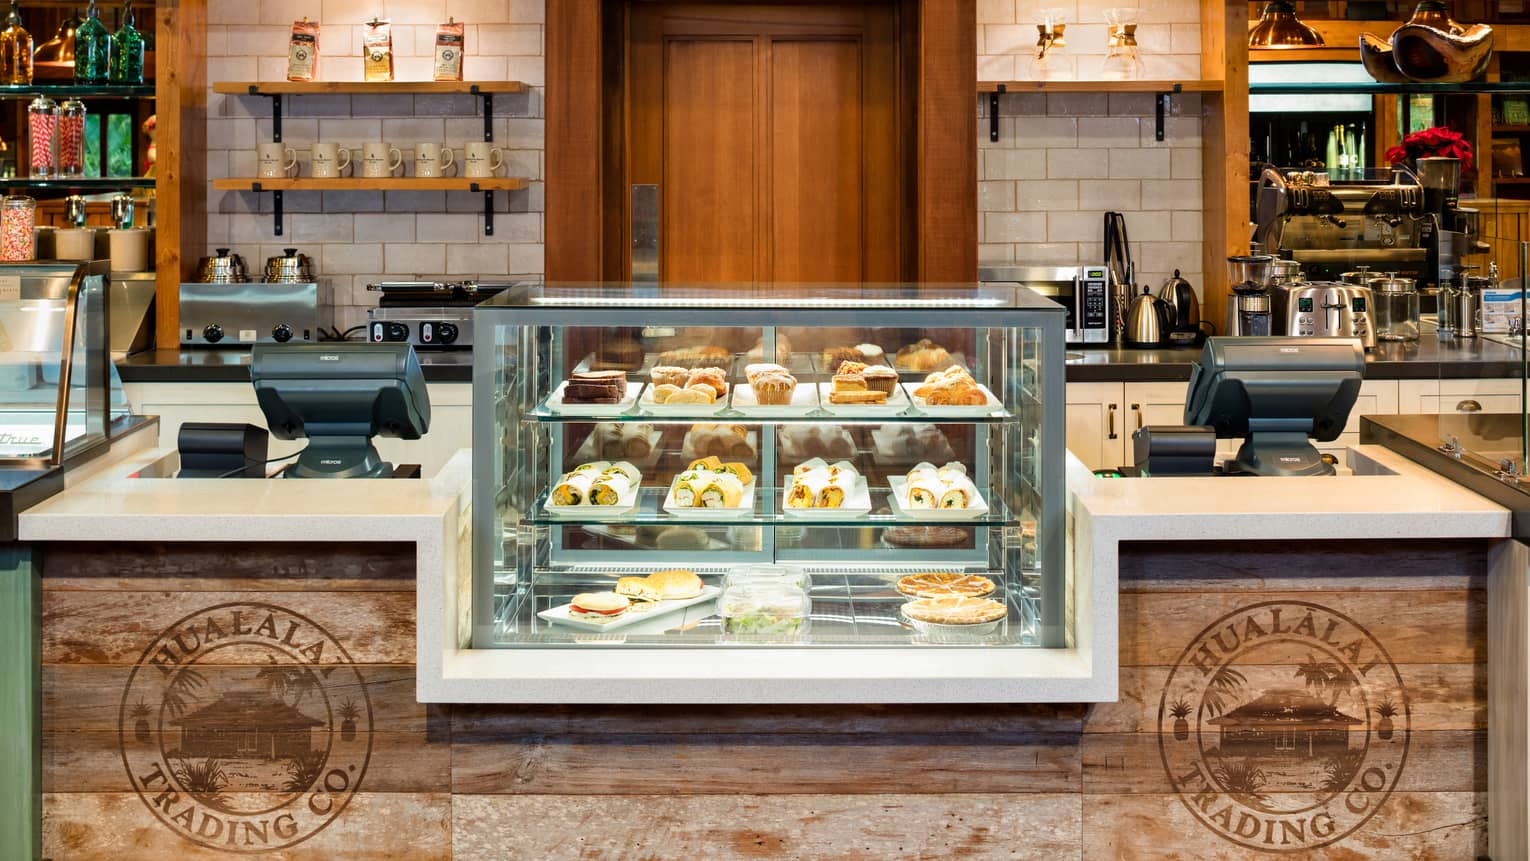 Hualalai Trading Company glass display with desserts at rustic wood counter